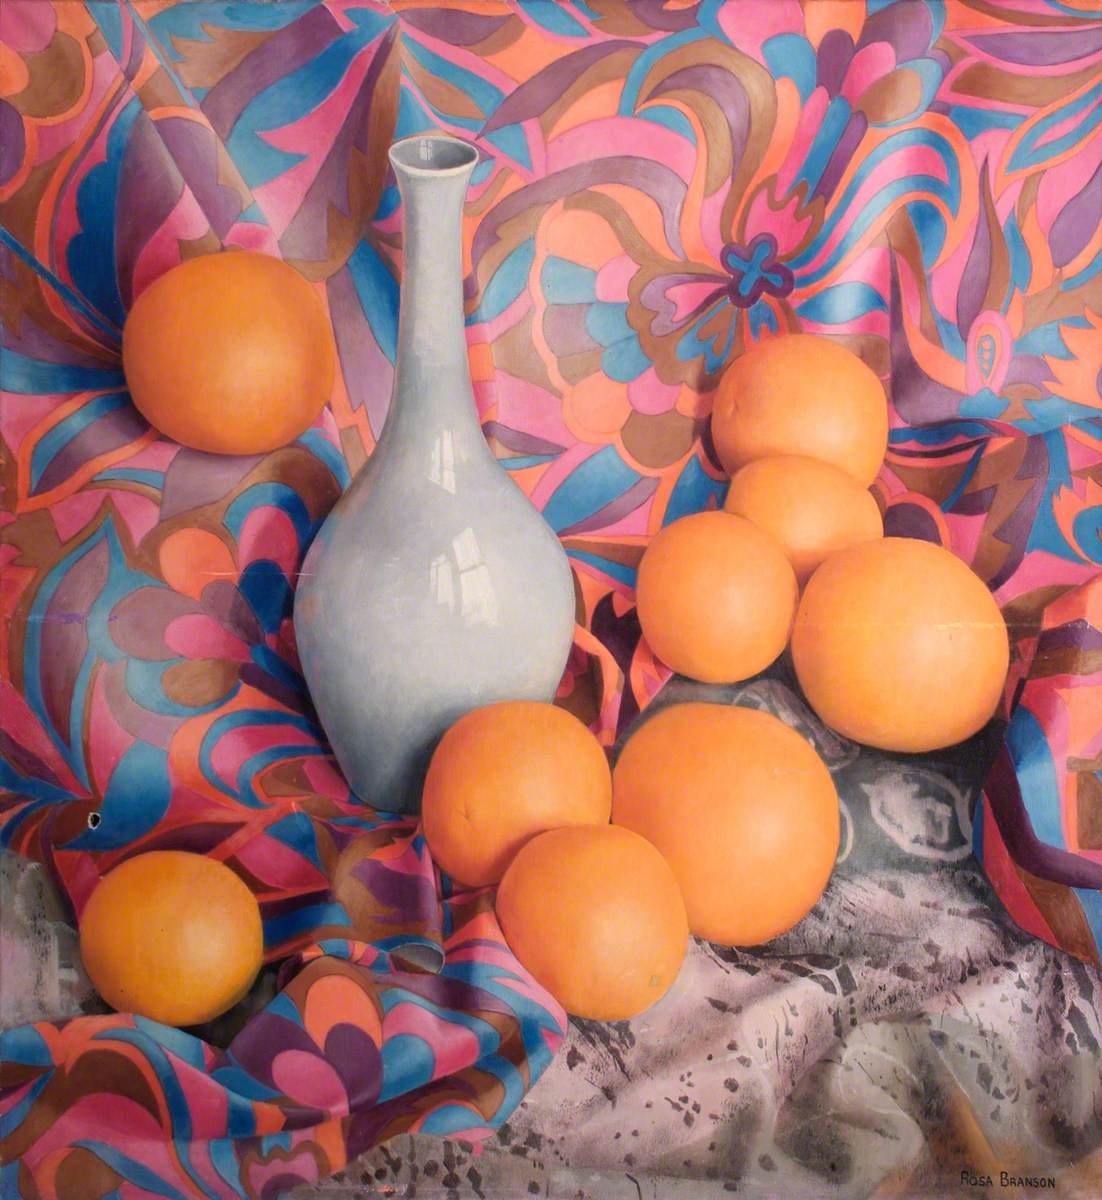 Oranges with a Vase